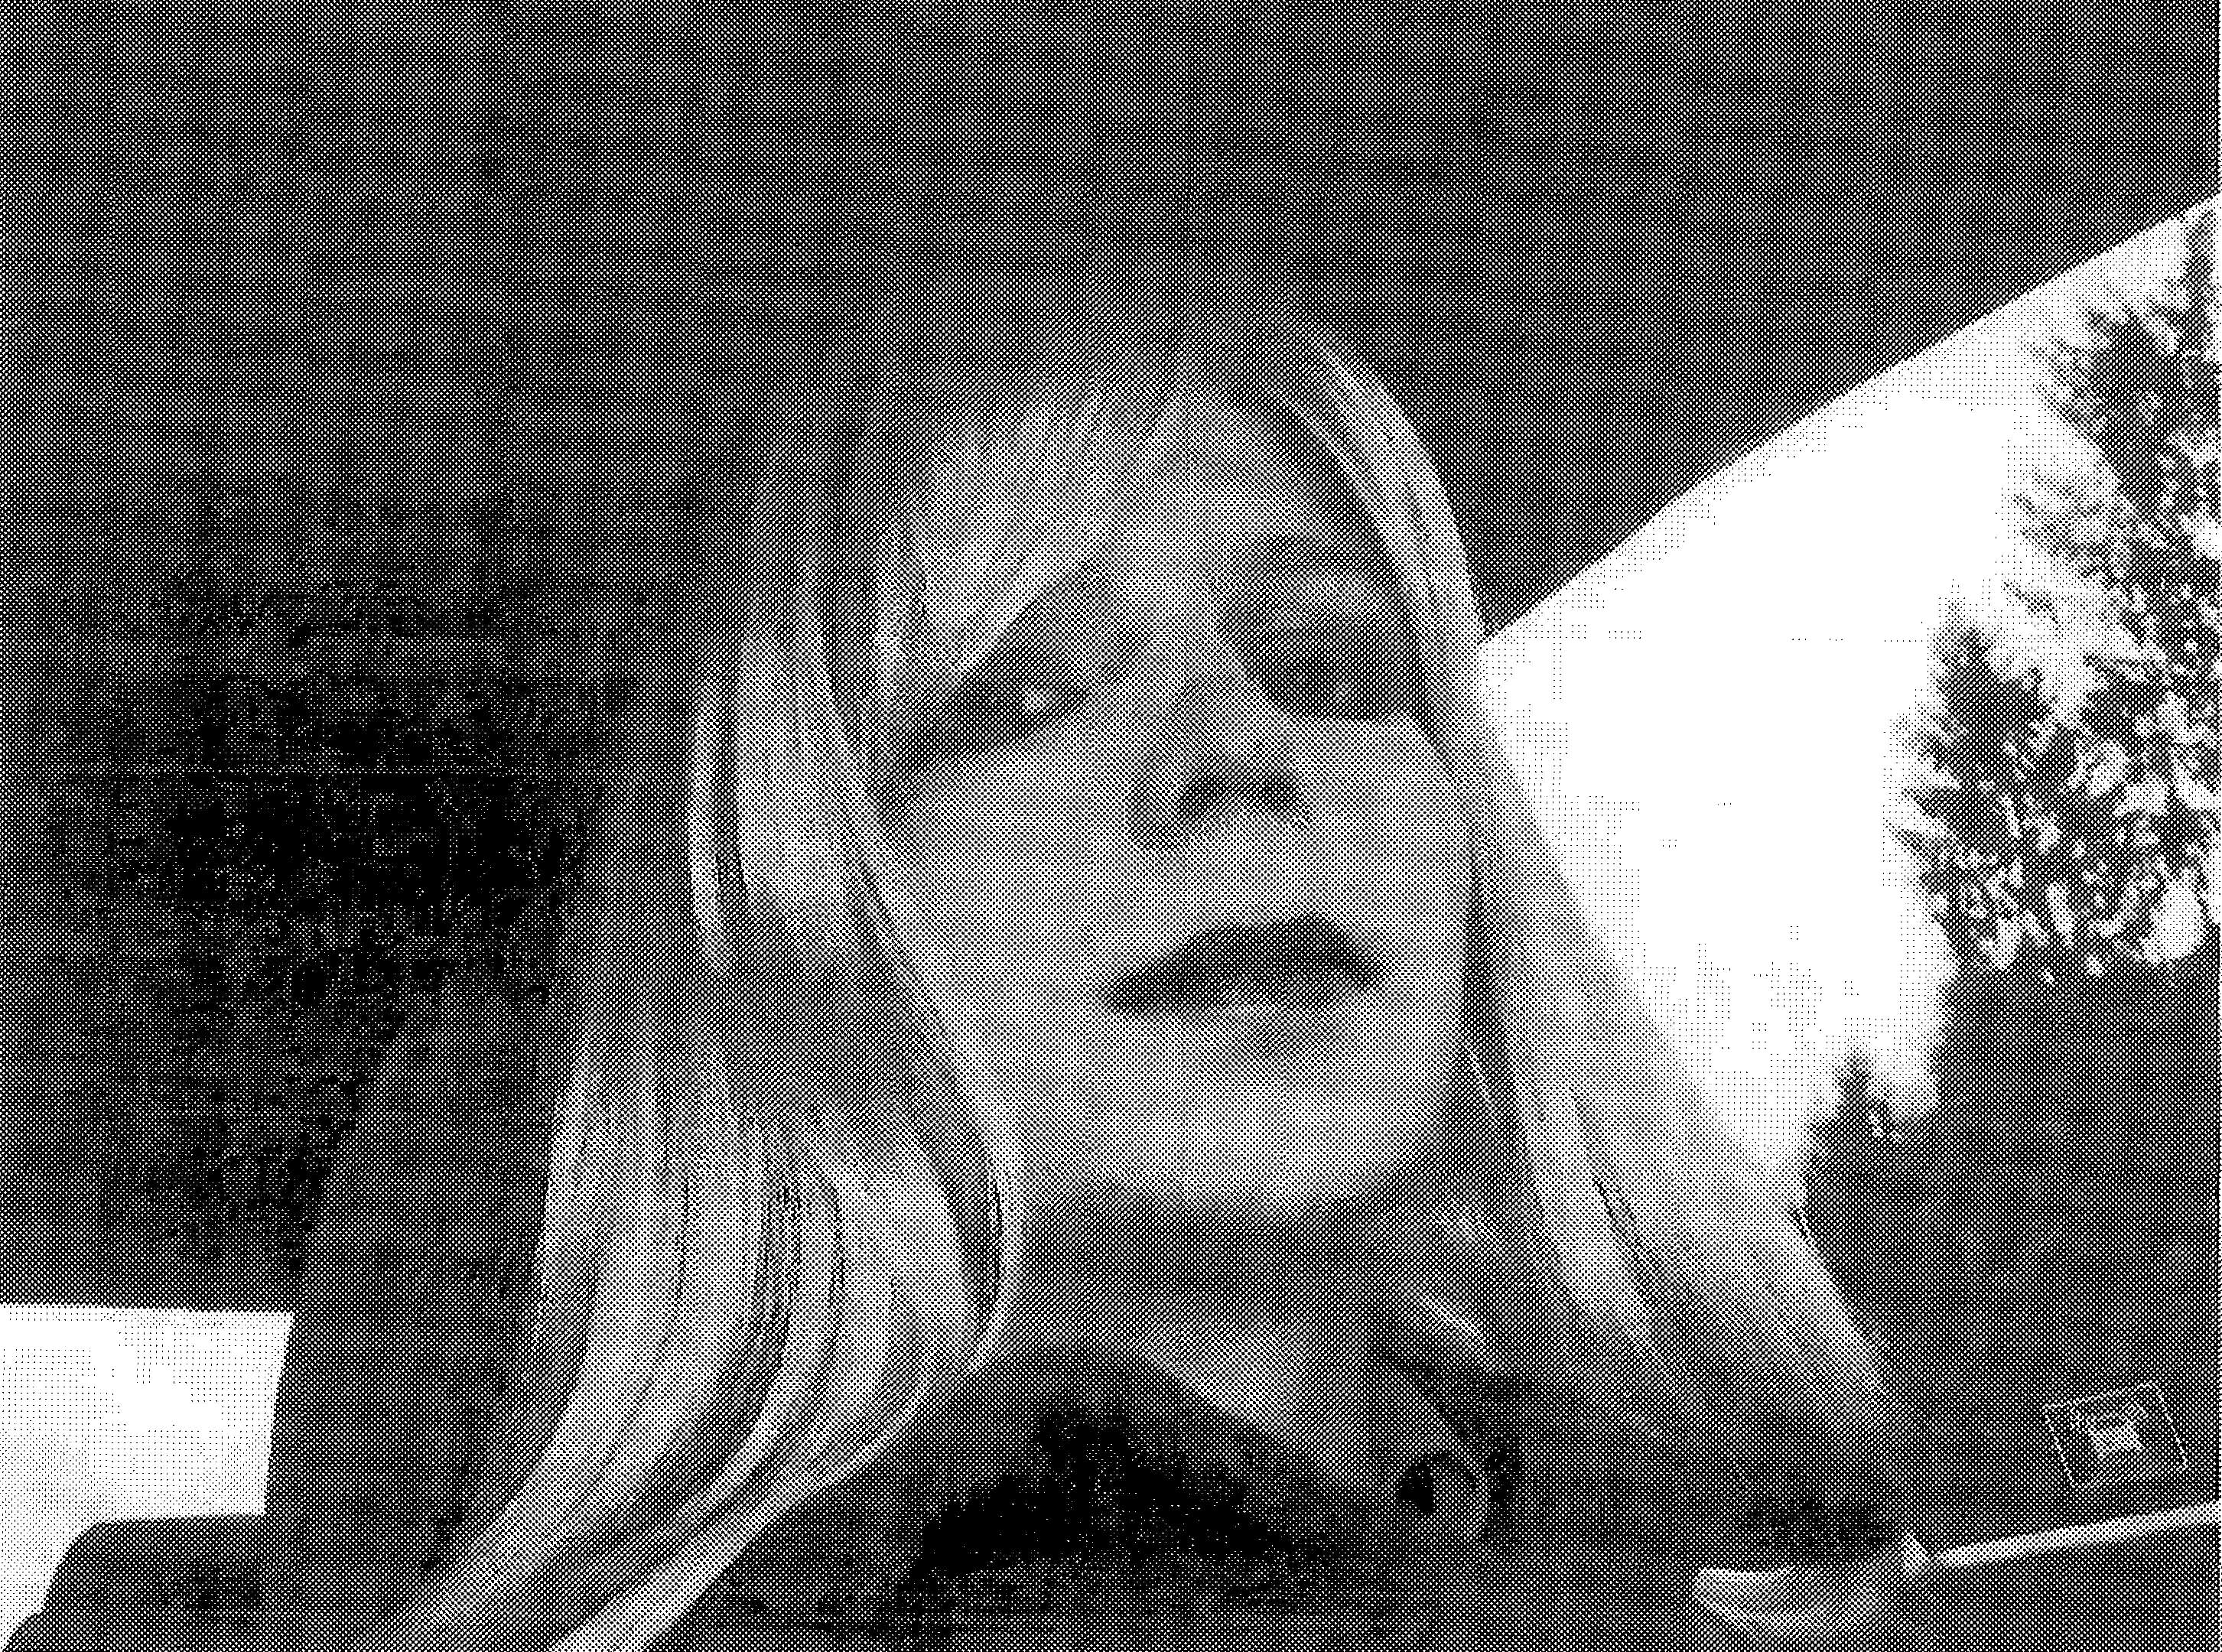 U.S. Army Private First Class Chelsea Manning in 2010.